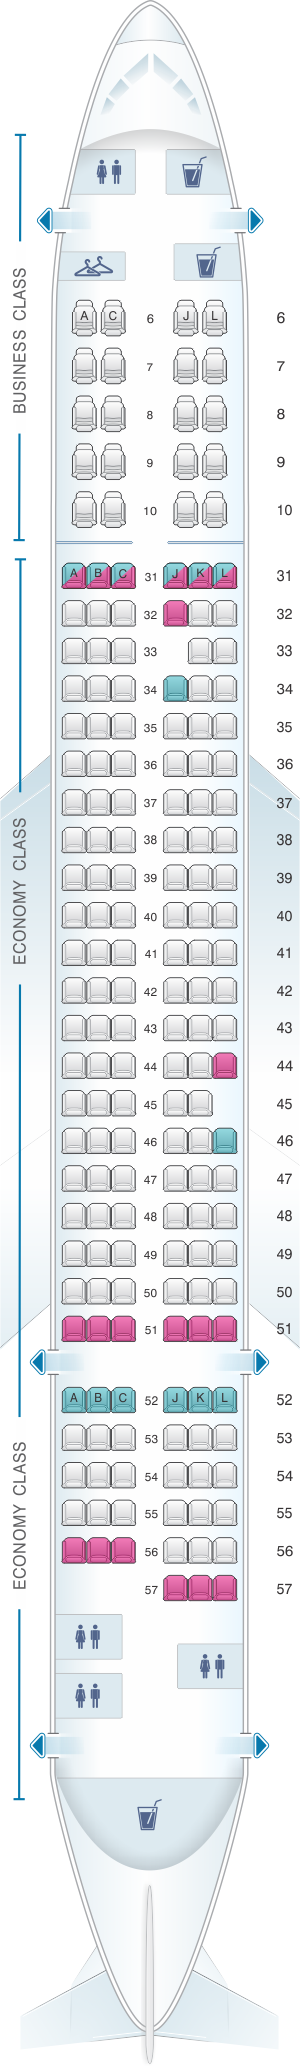 Seat Map China Eastern Airlines Airbus A321 200 China